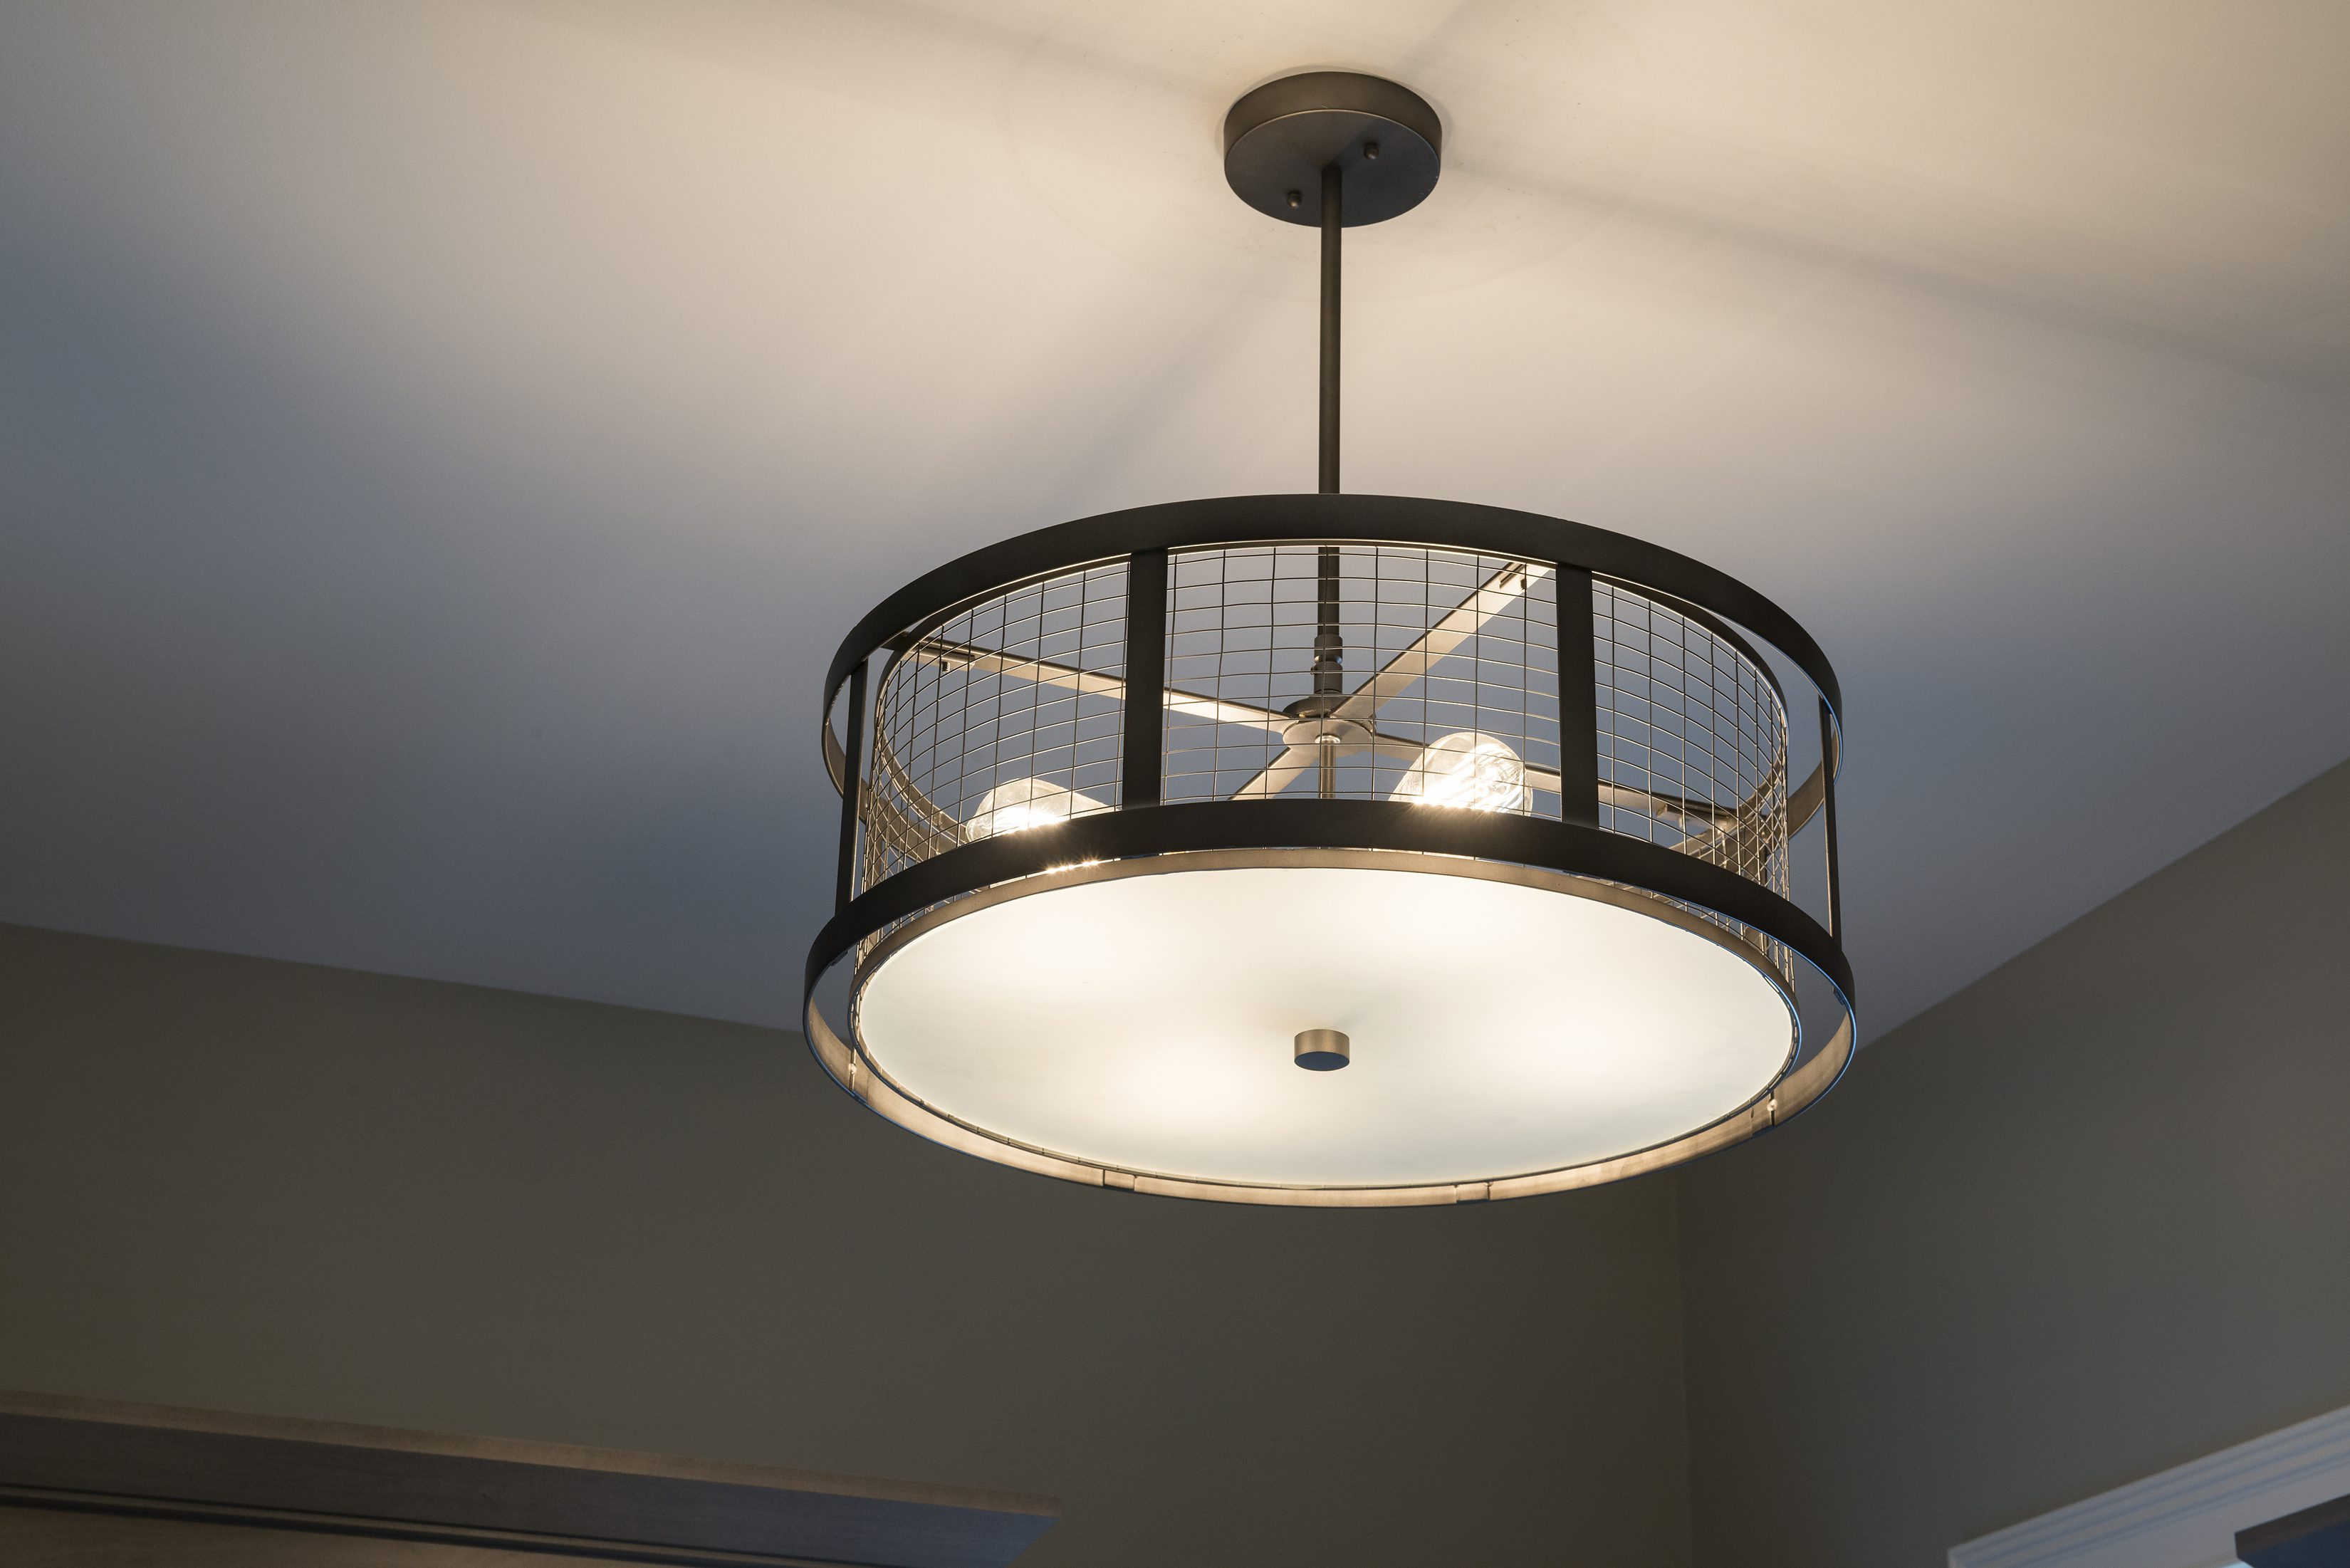 Laundry Room Ceiling Lights Fabulous Home Design